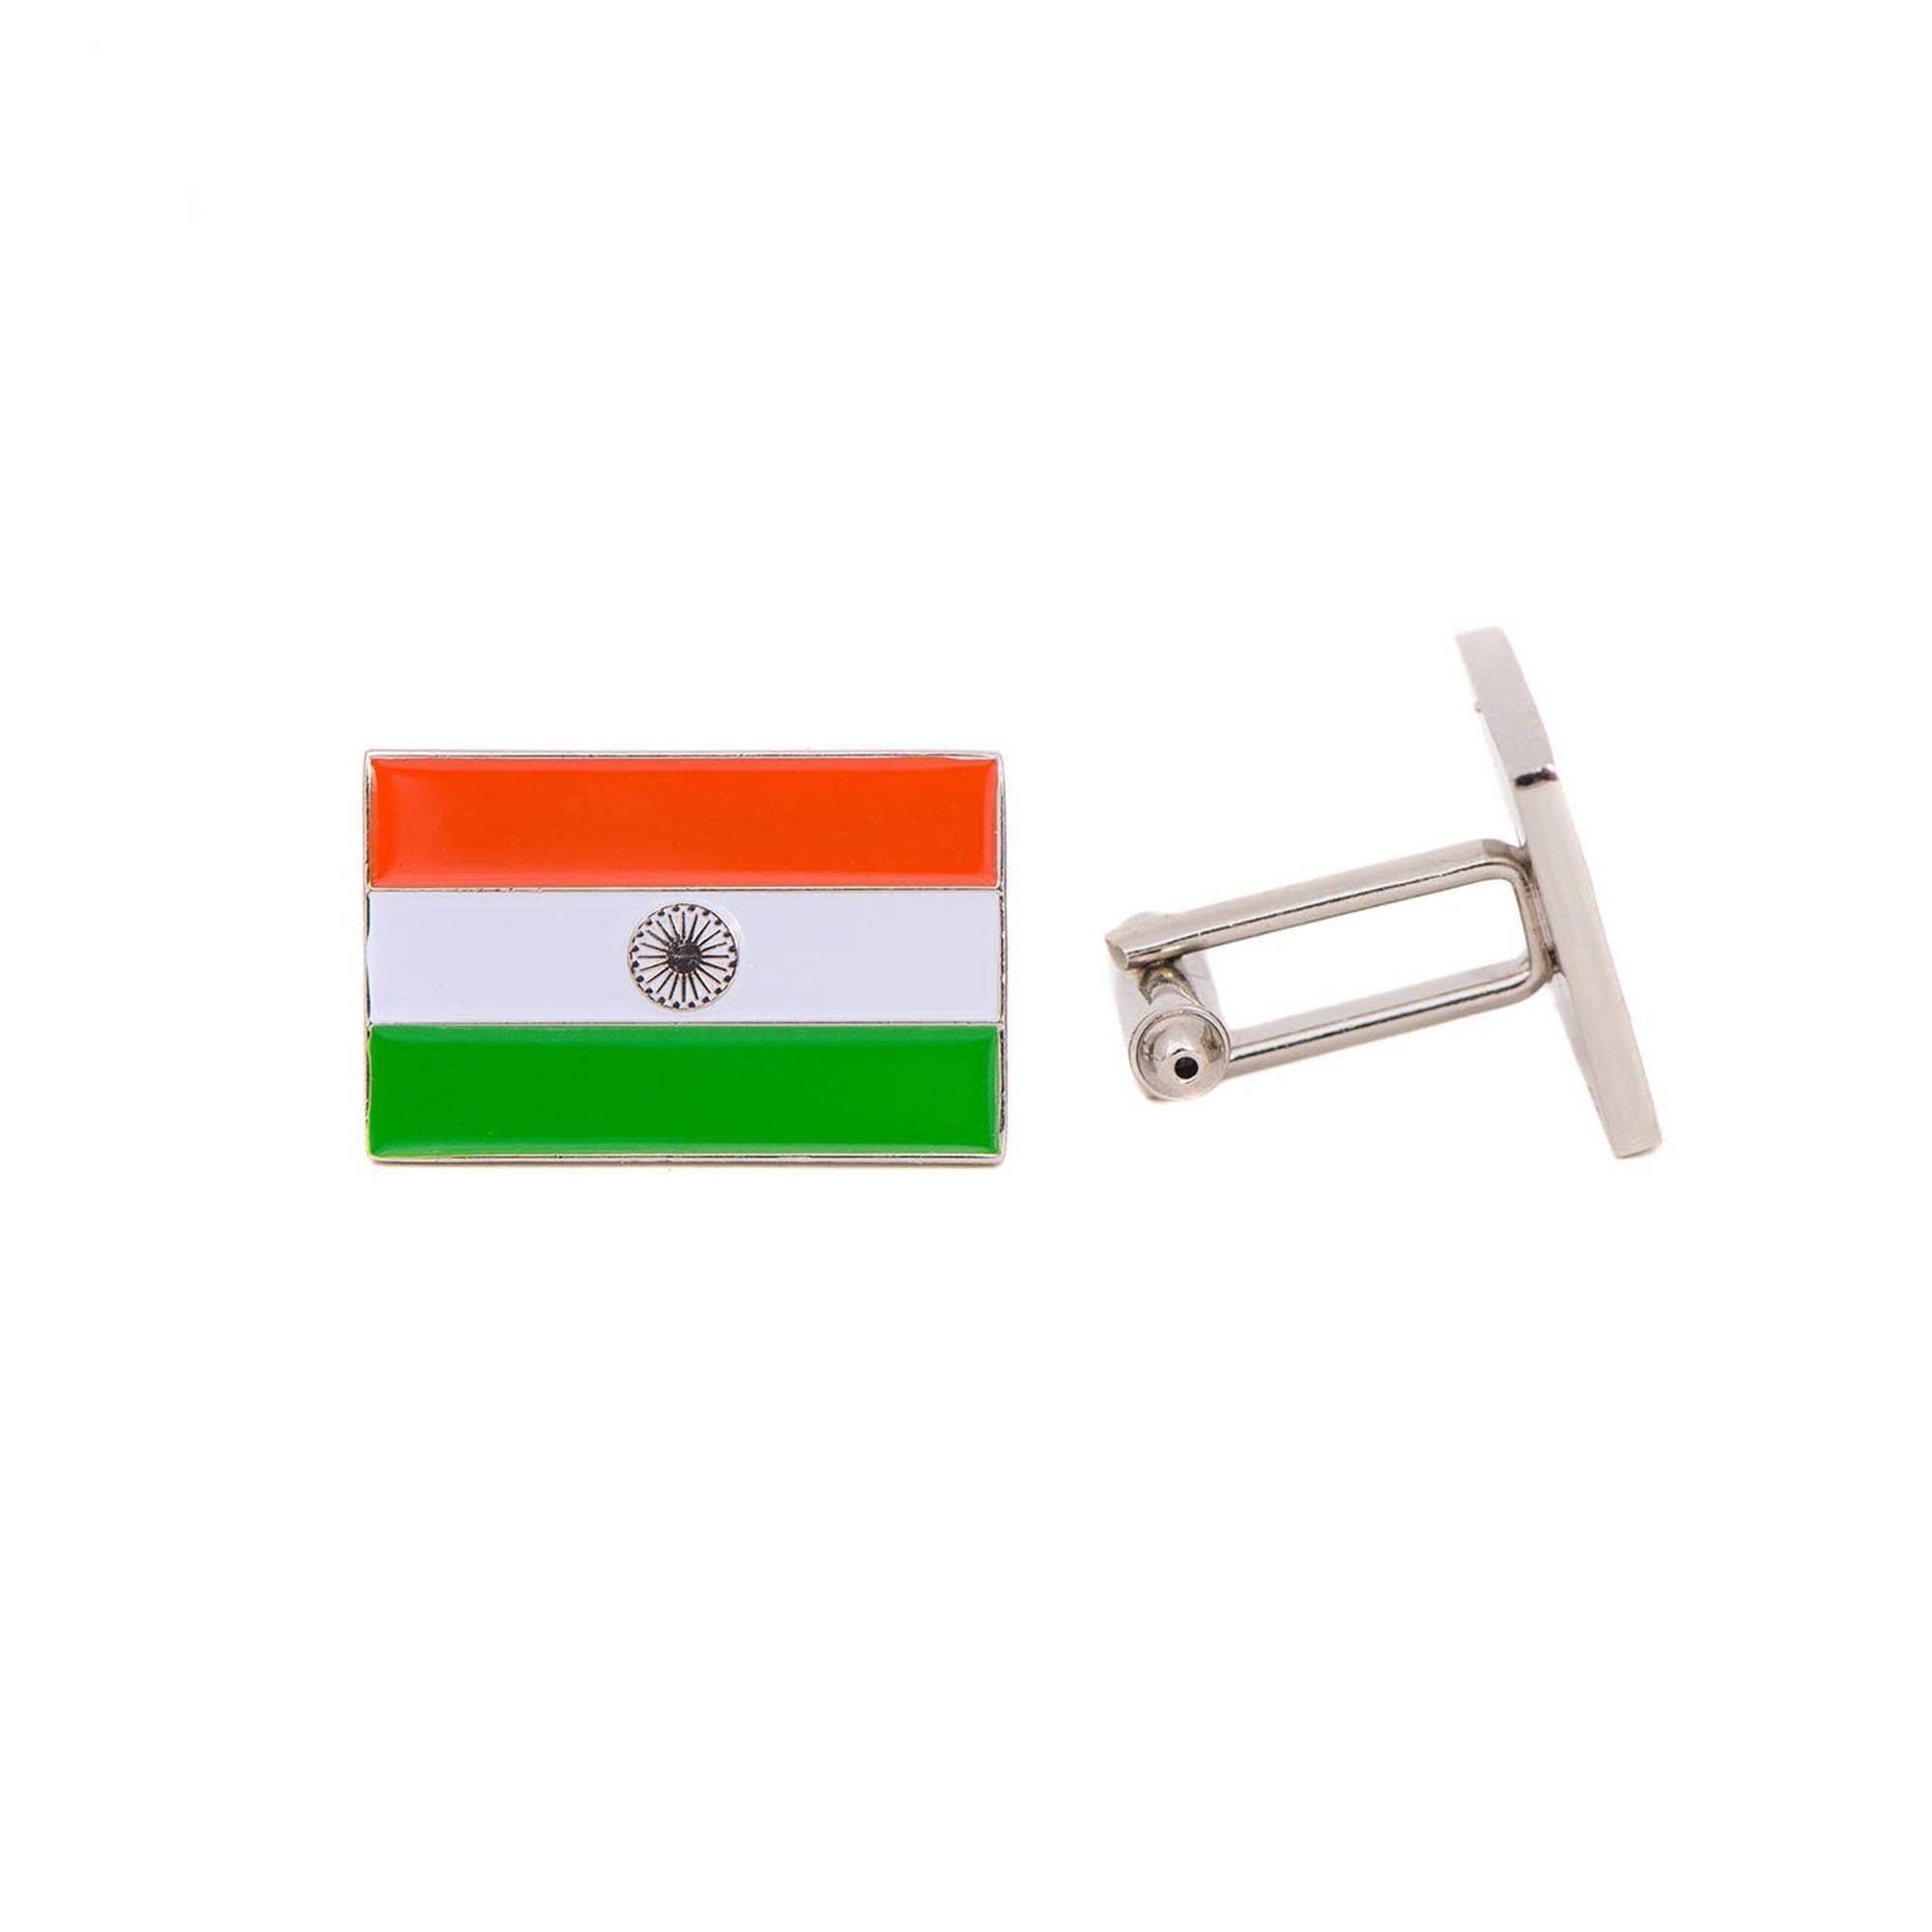 Desert Cactus India Rectangle Country Flag Cufflinks Formal Wear Blazer For French Cuff Shirt Indian